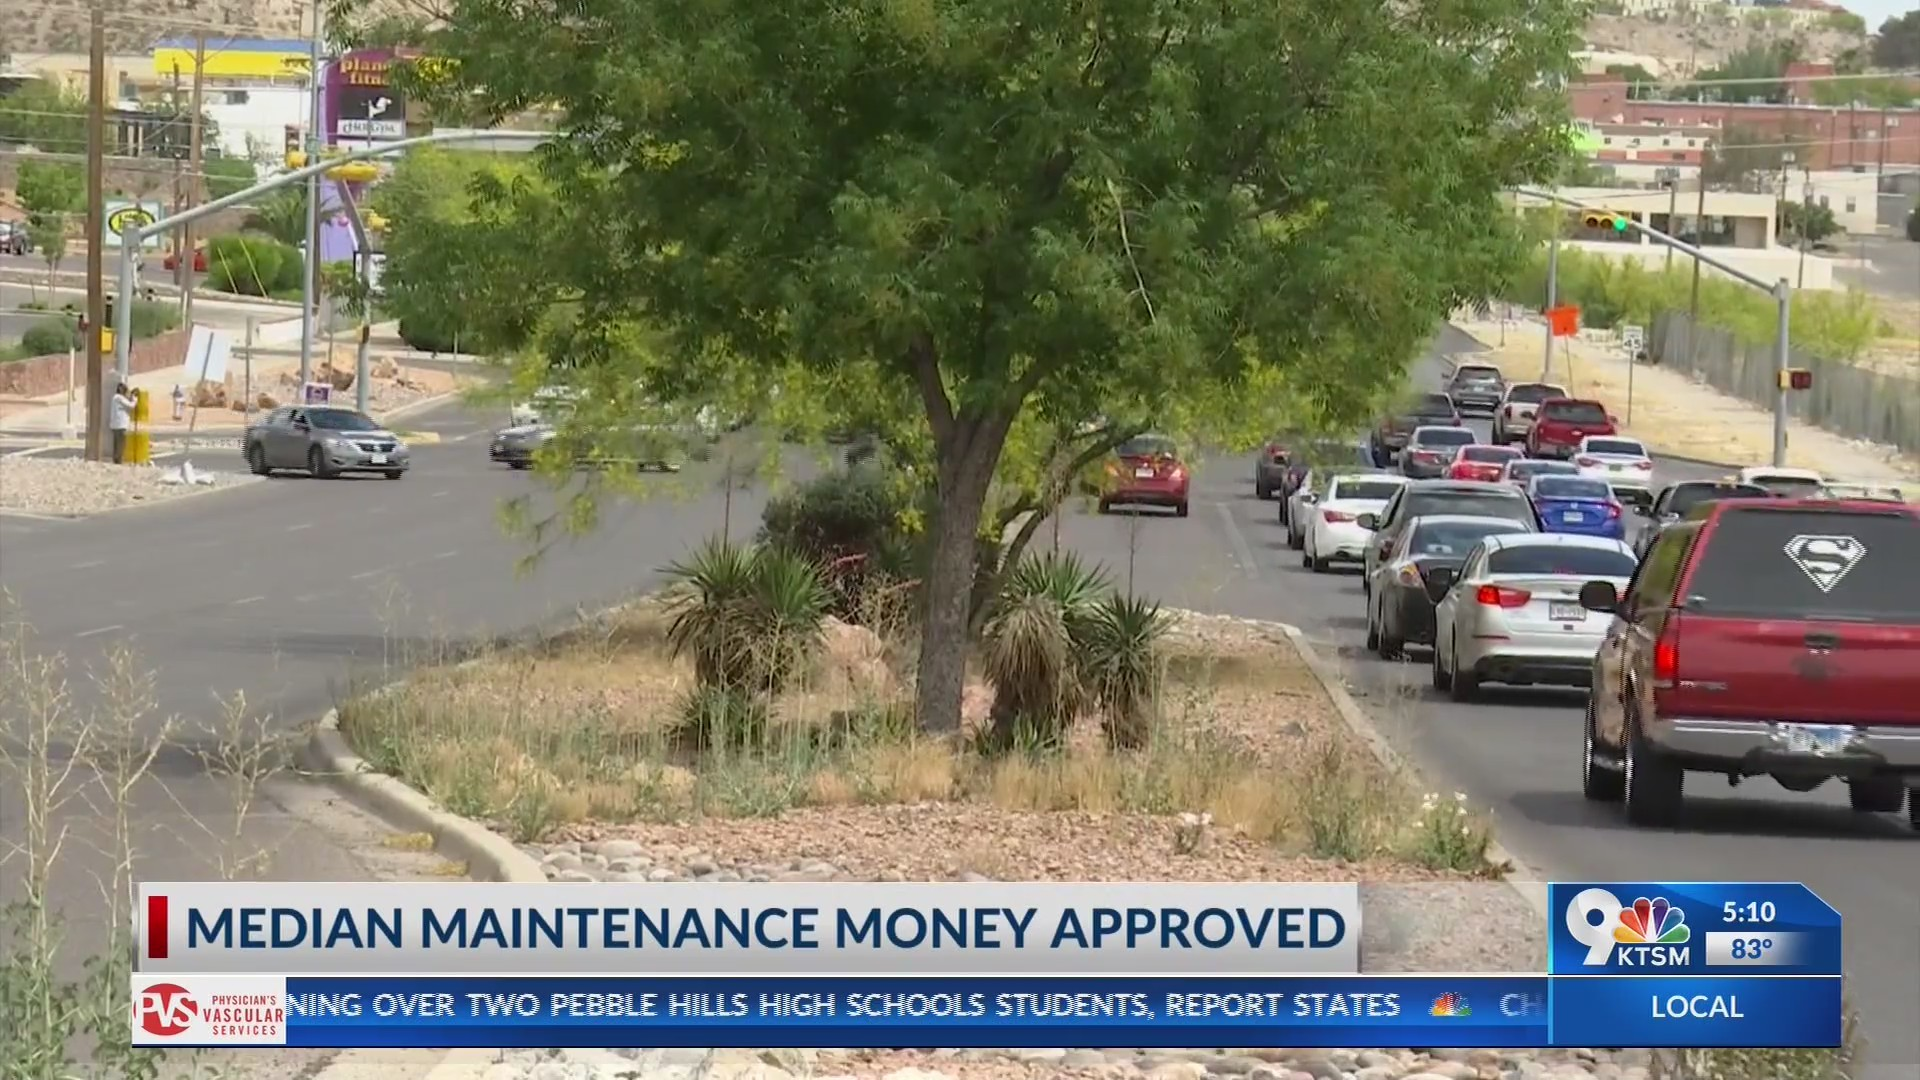 City of El Paso and TxDOT approve funding for median maitenance